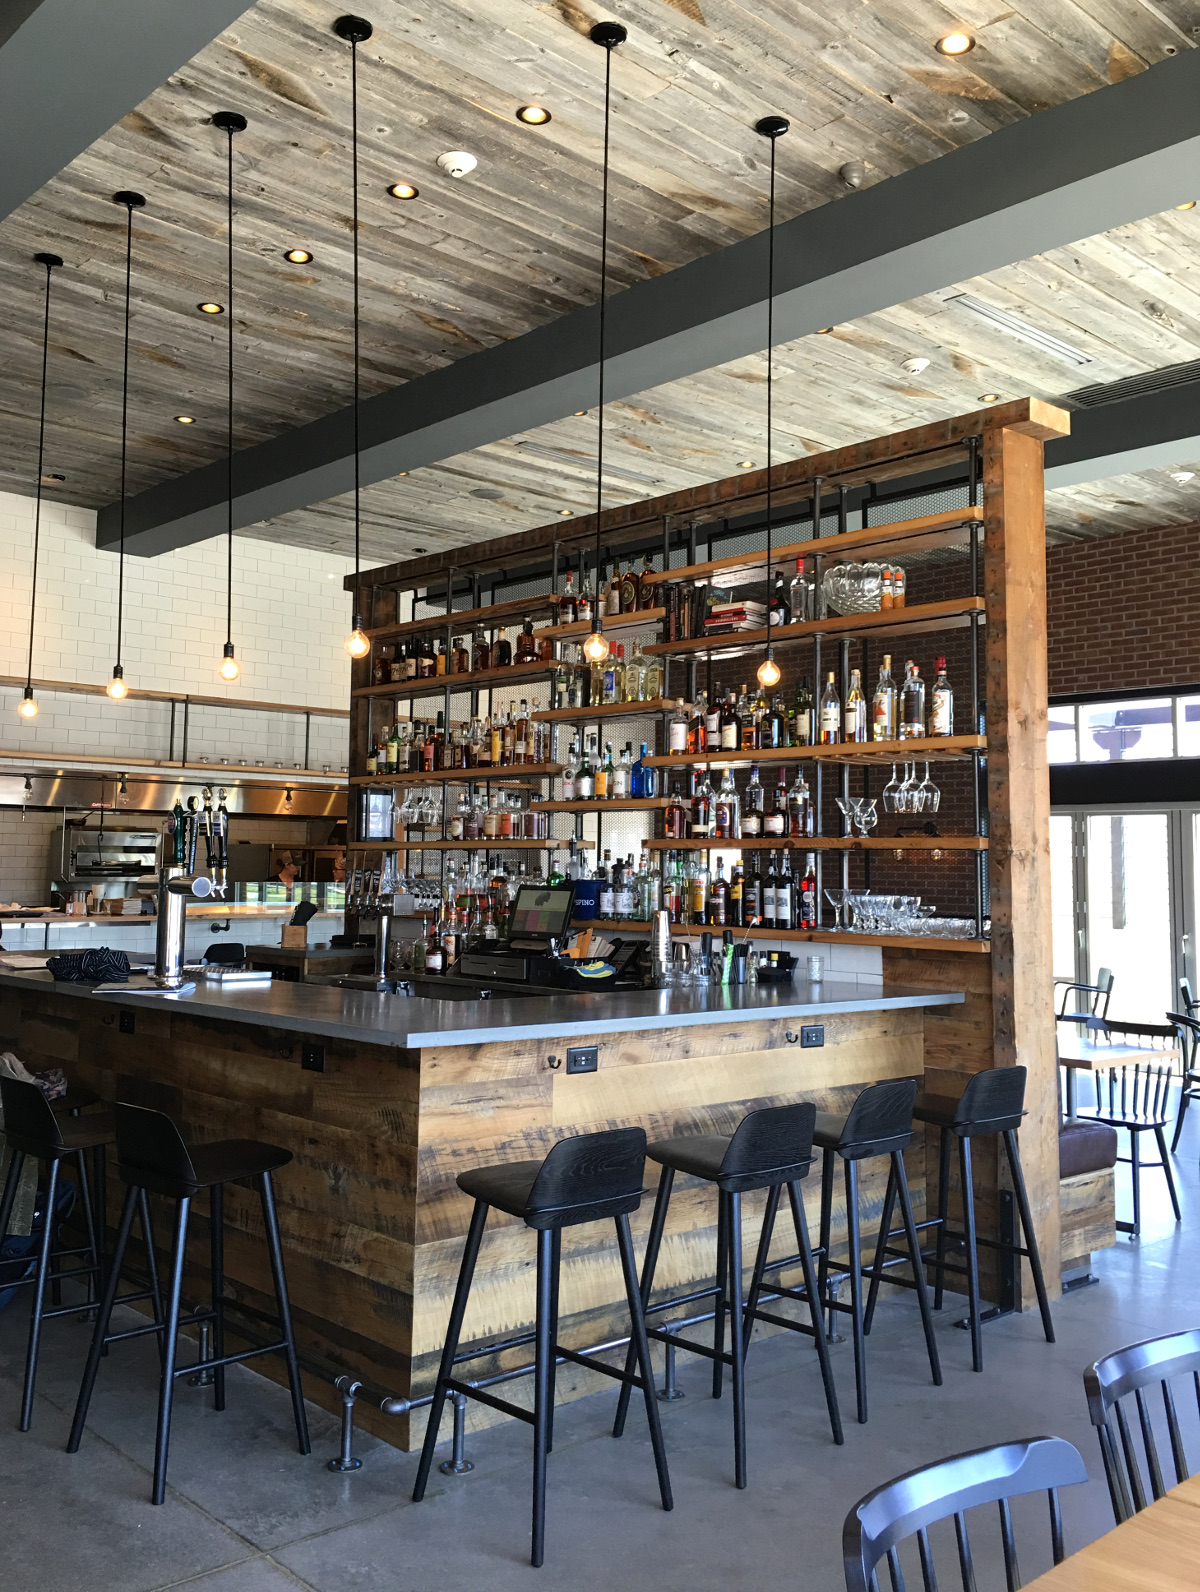 Kindred Fare bar from front to shelving was crafted of reclaimed wood by NEWwoodworks.